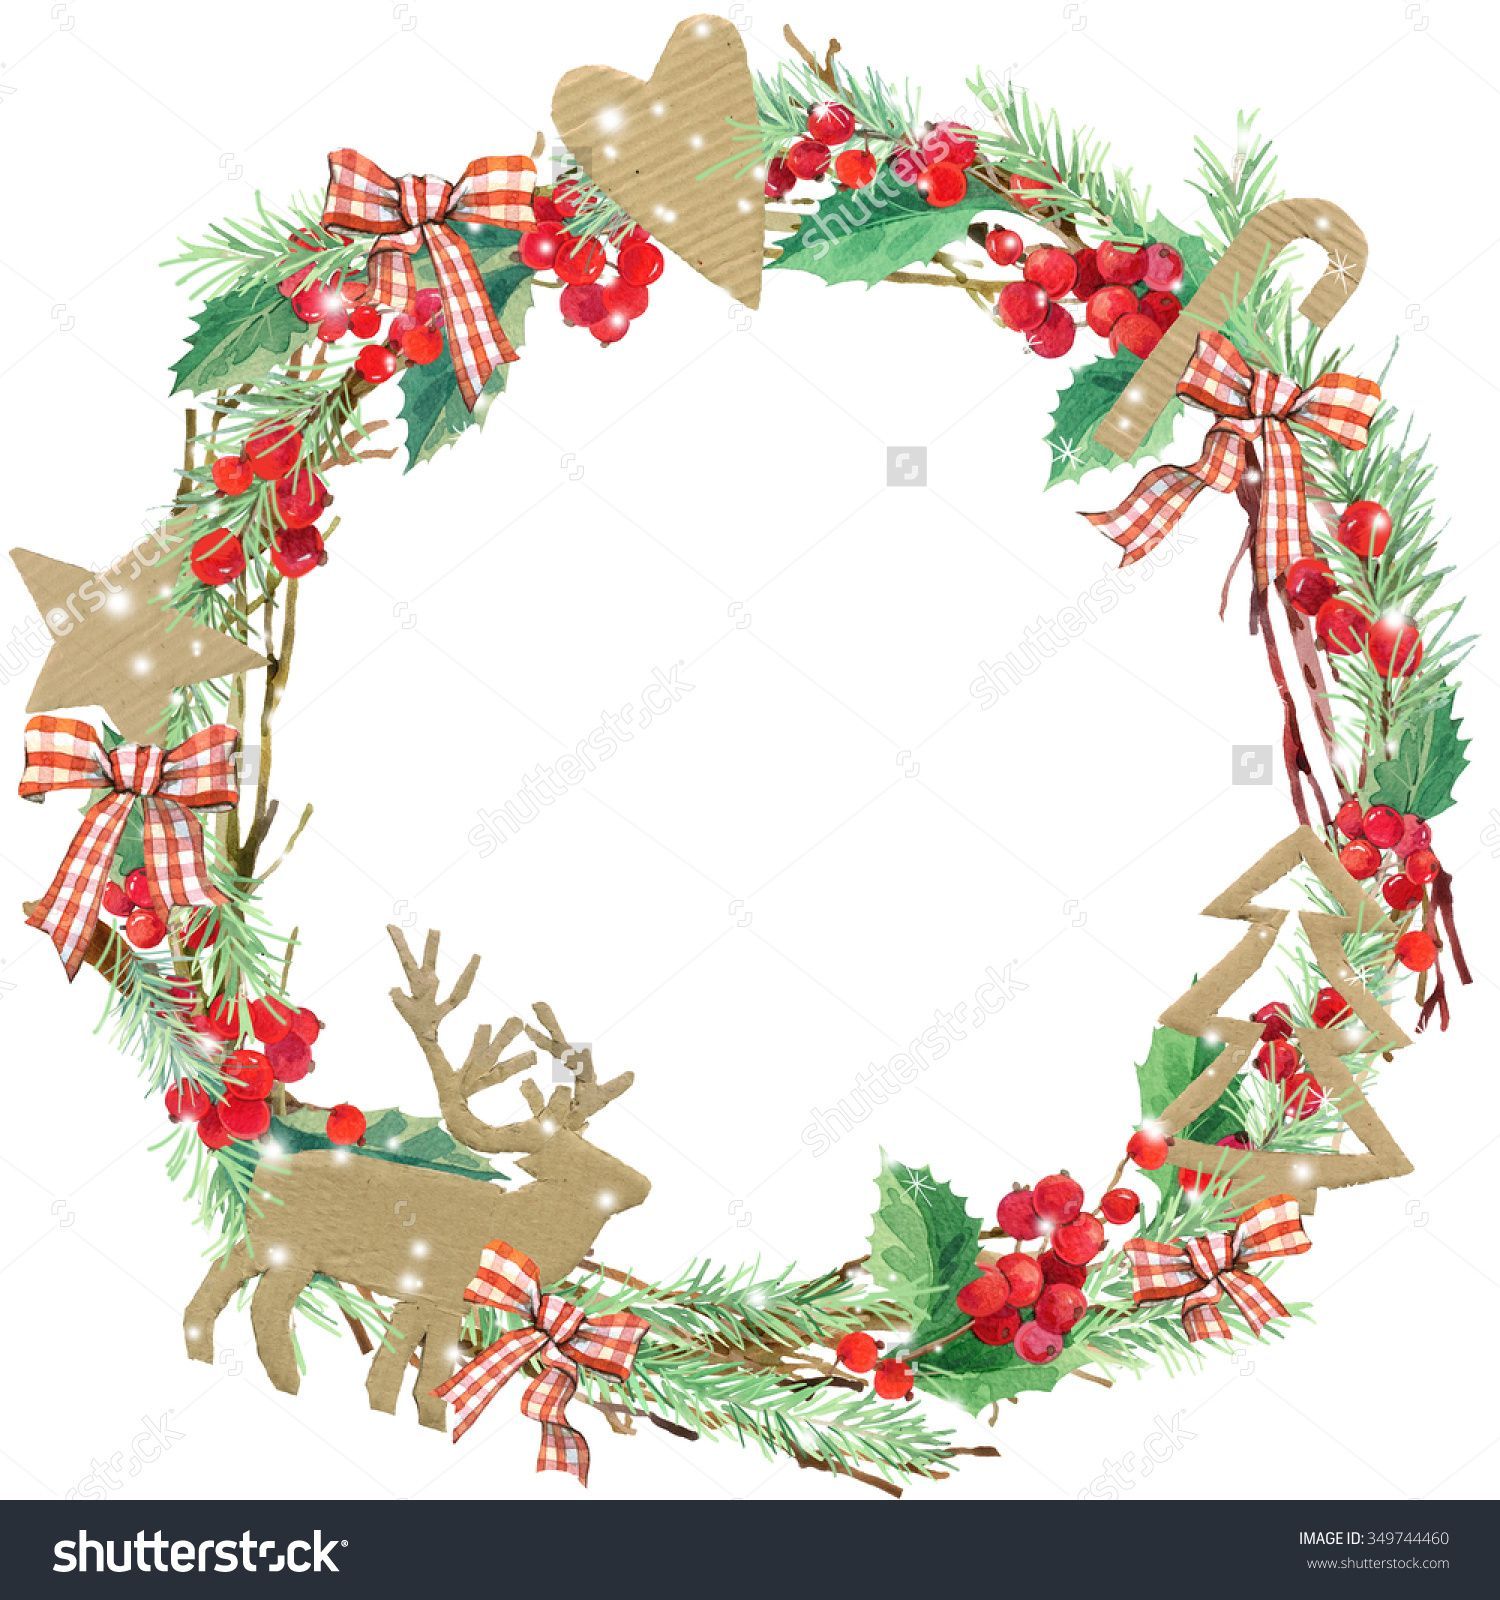 Stock Photo Watercolor Christmas Wreath Frame Watercolor Winter